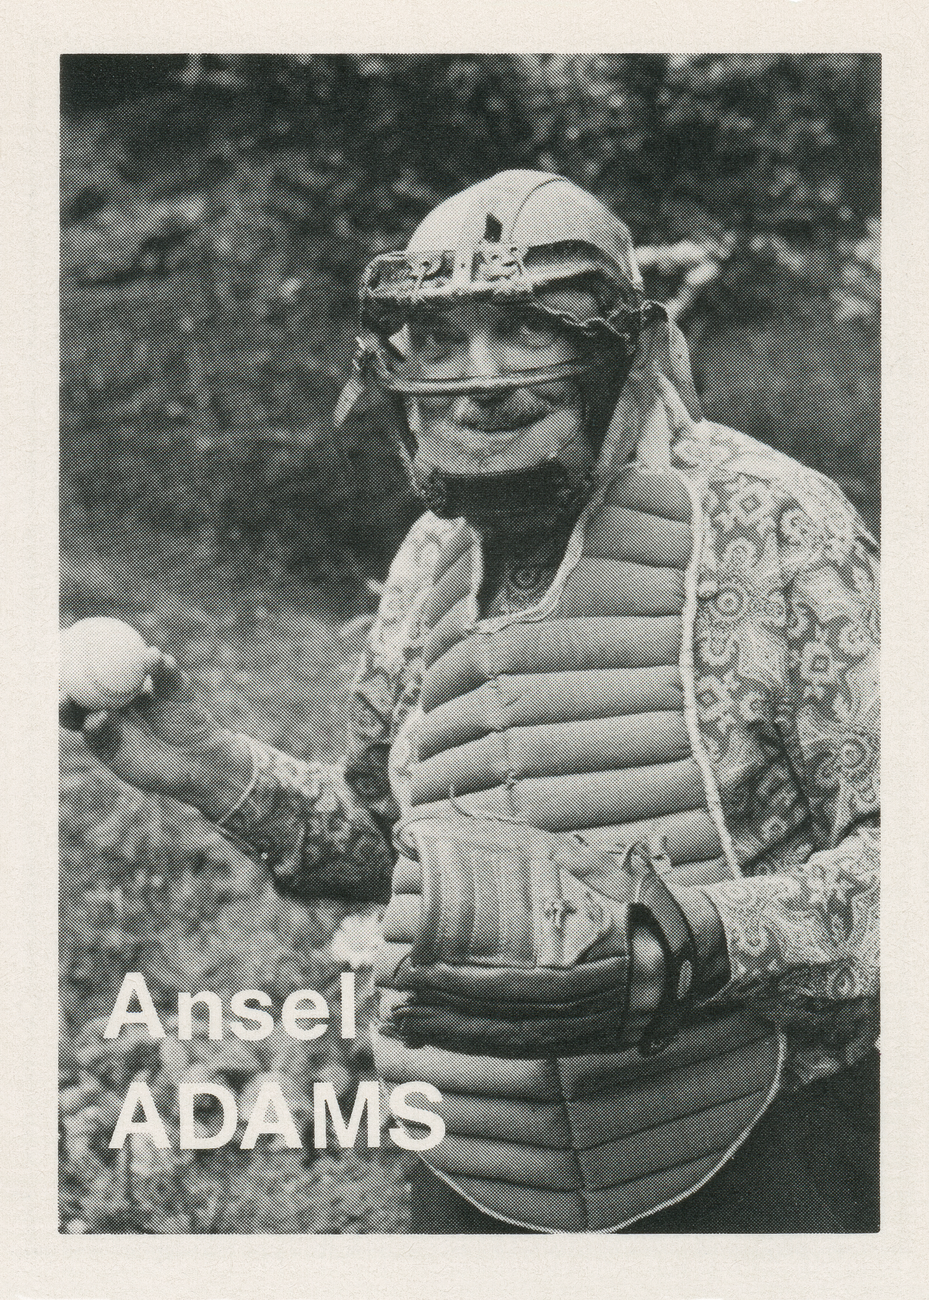 Artwork image, Mike Mandel, Baseball photographer trading card Ansel Adams